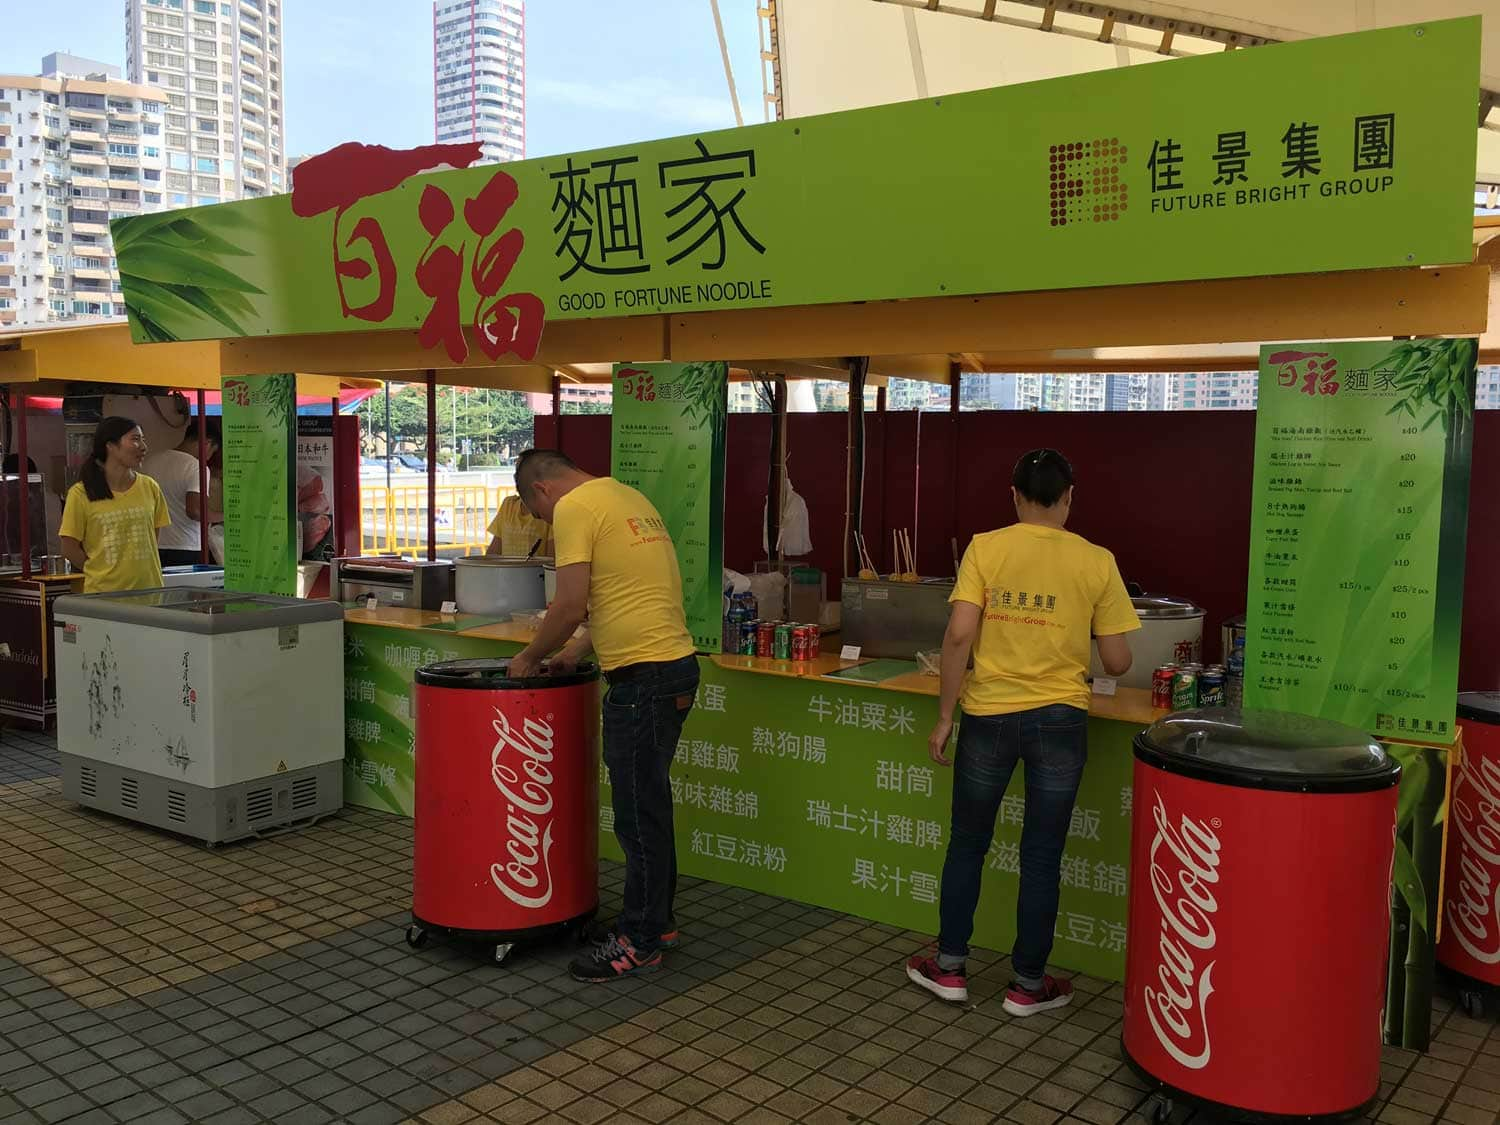 Macau Dragonboat Races food booths